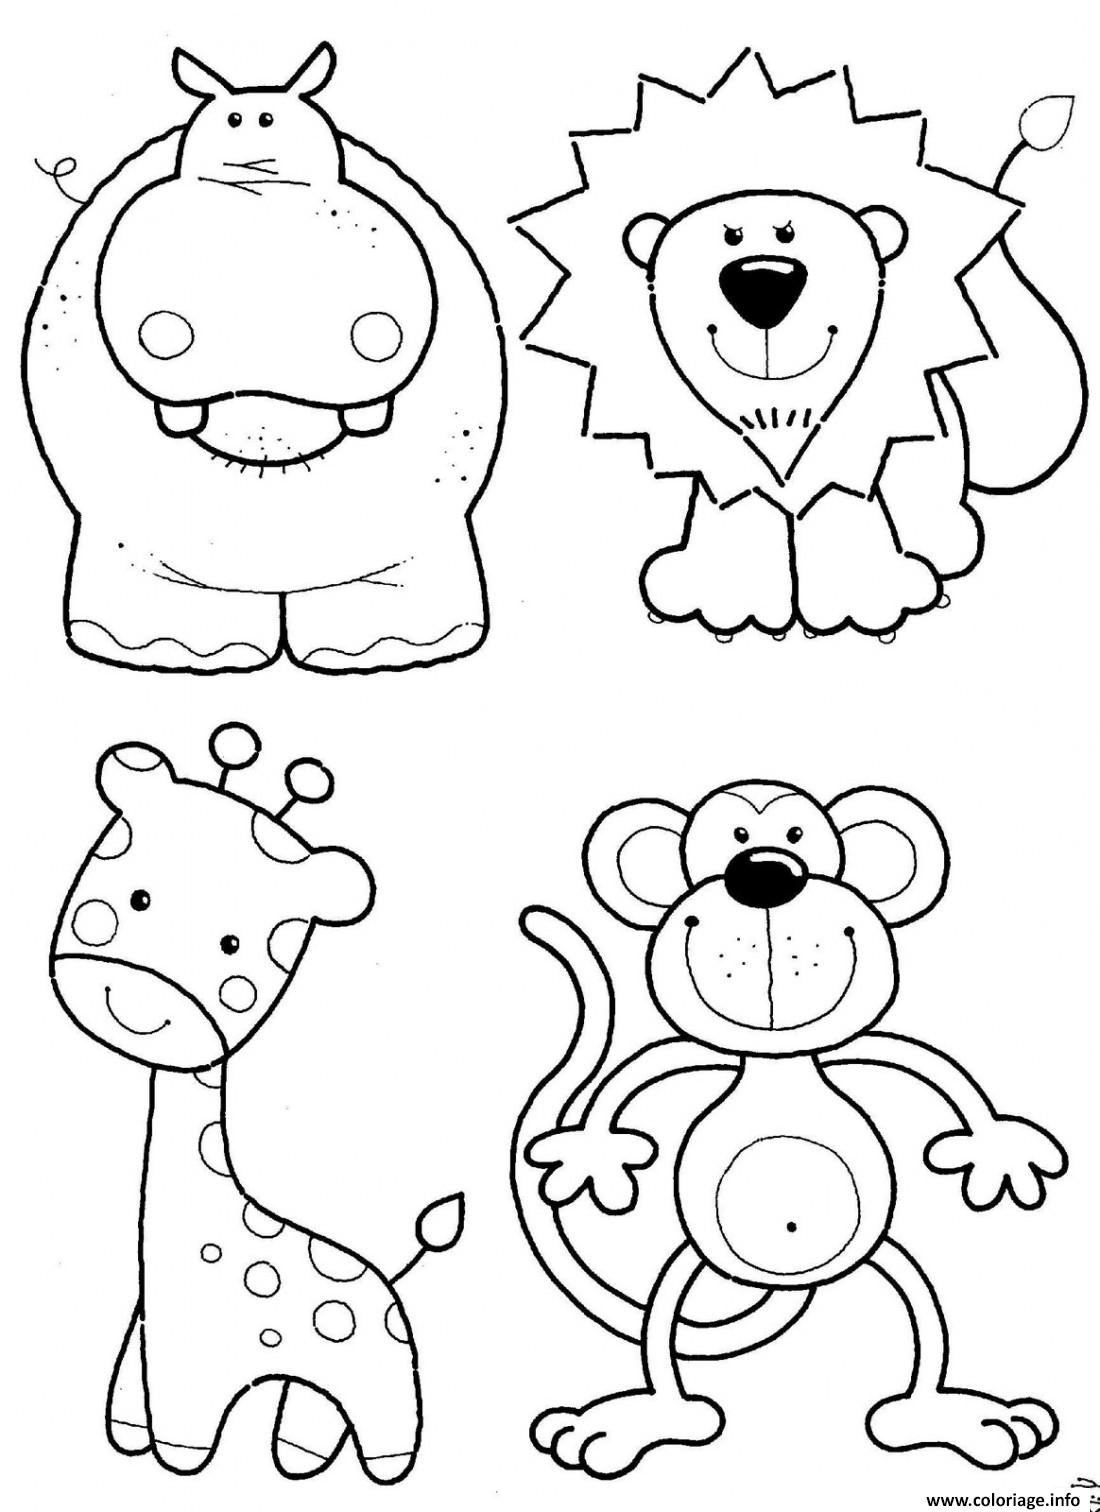 Coloriage Animals Tsum Tsum Facile Cute Dessin à Imprimer